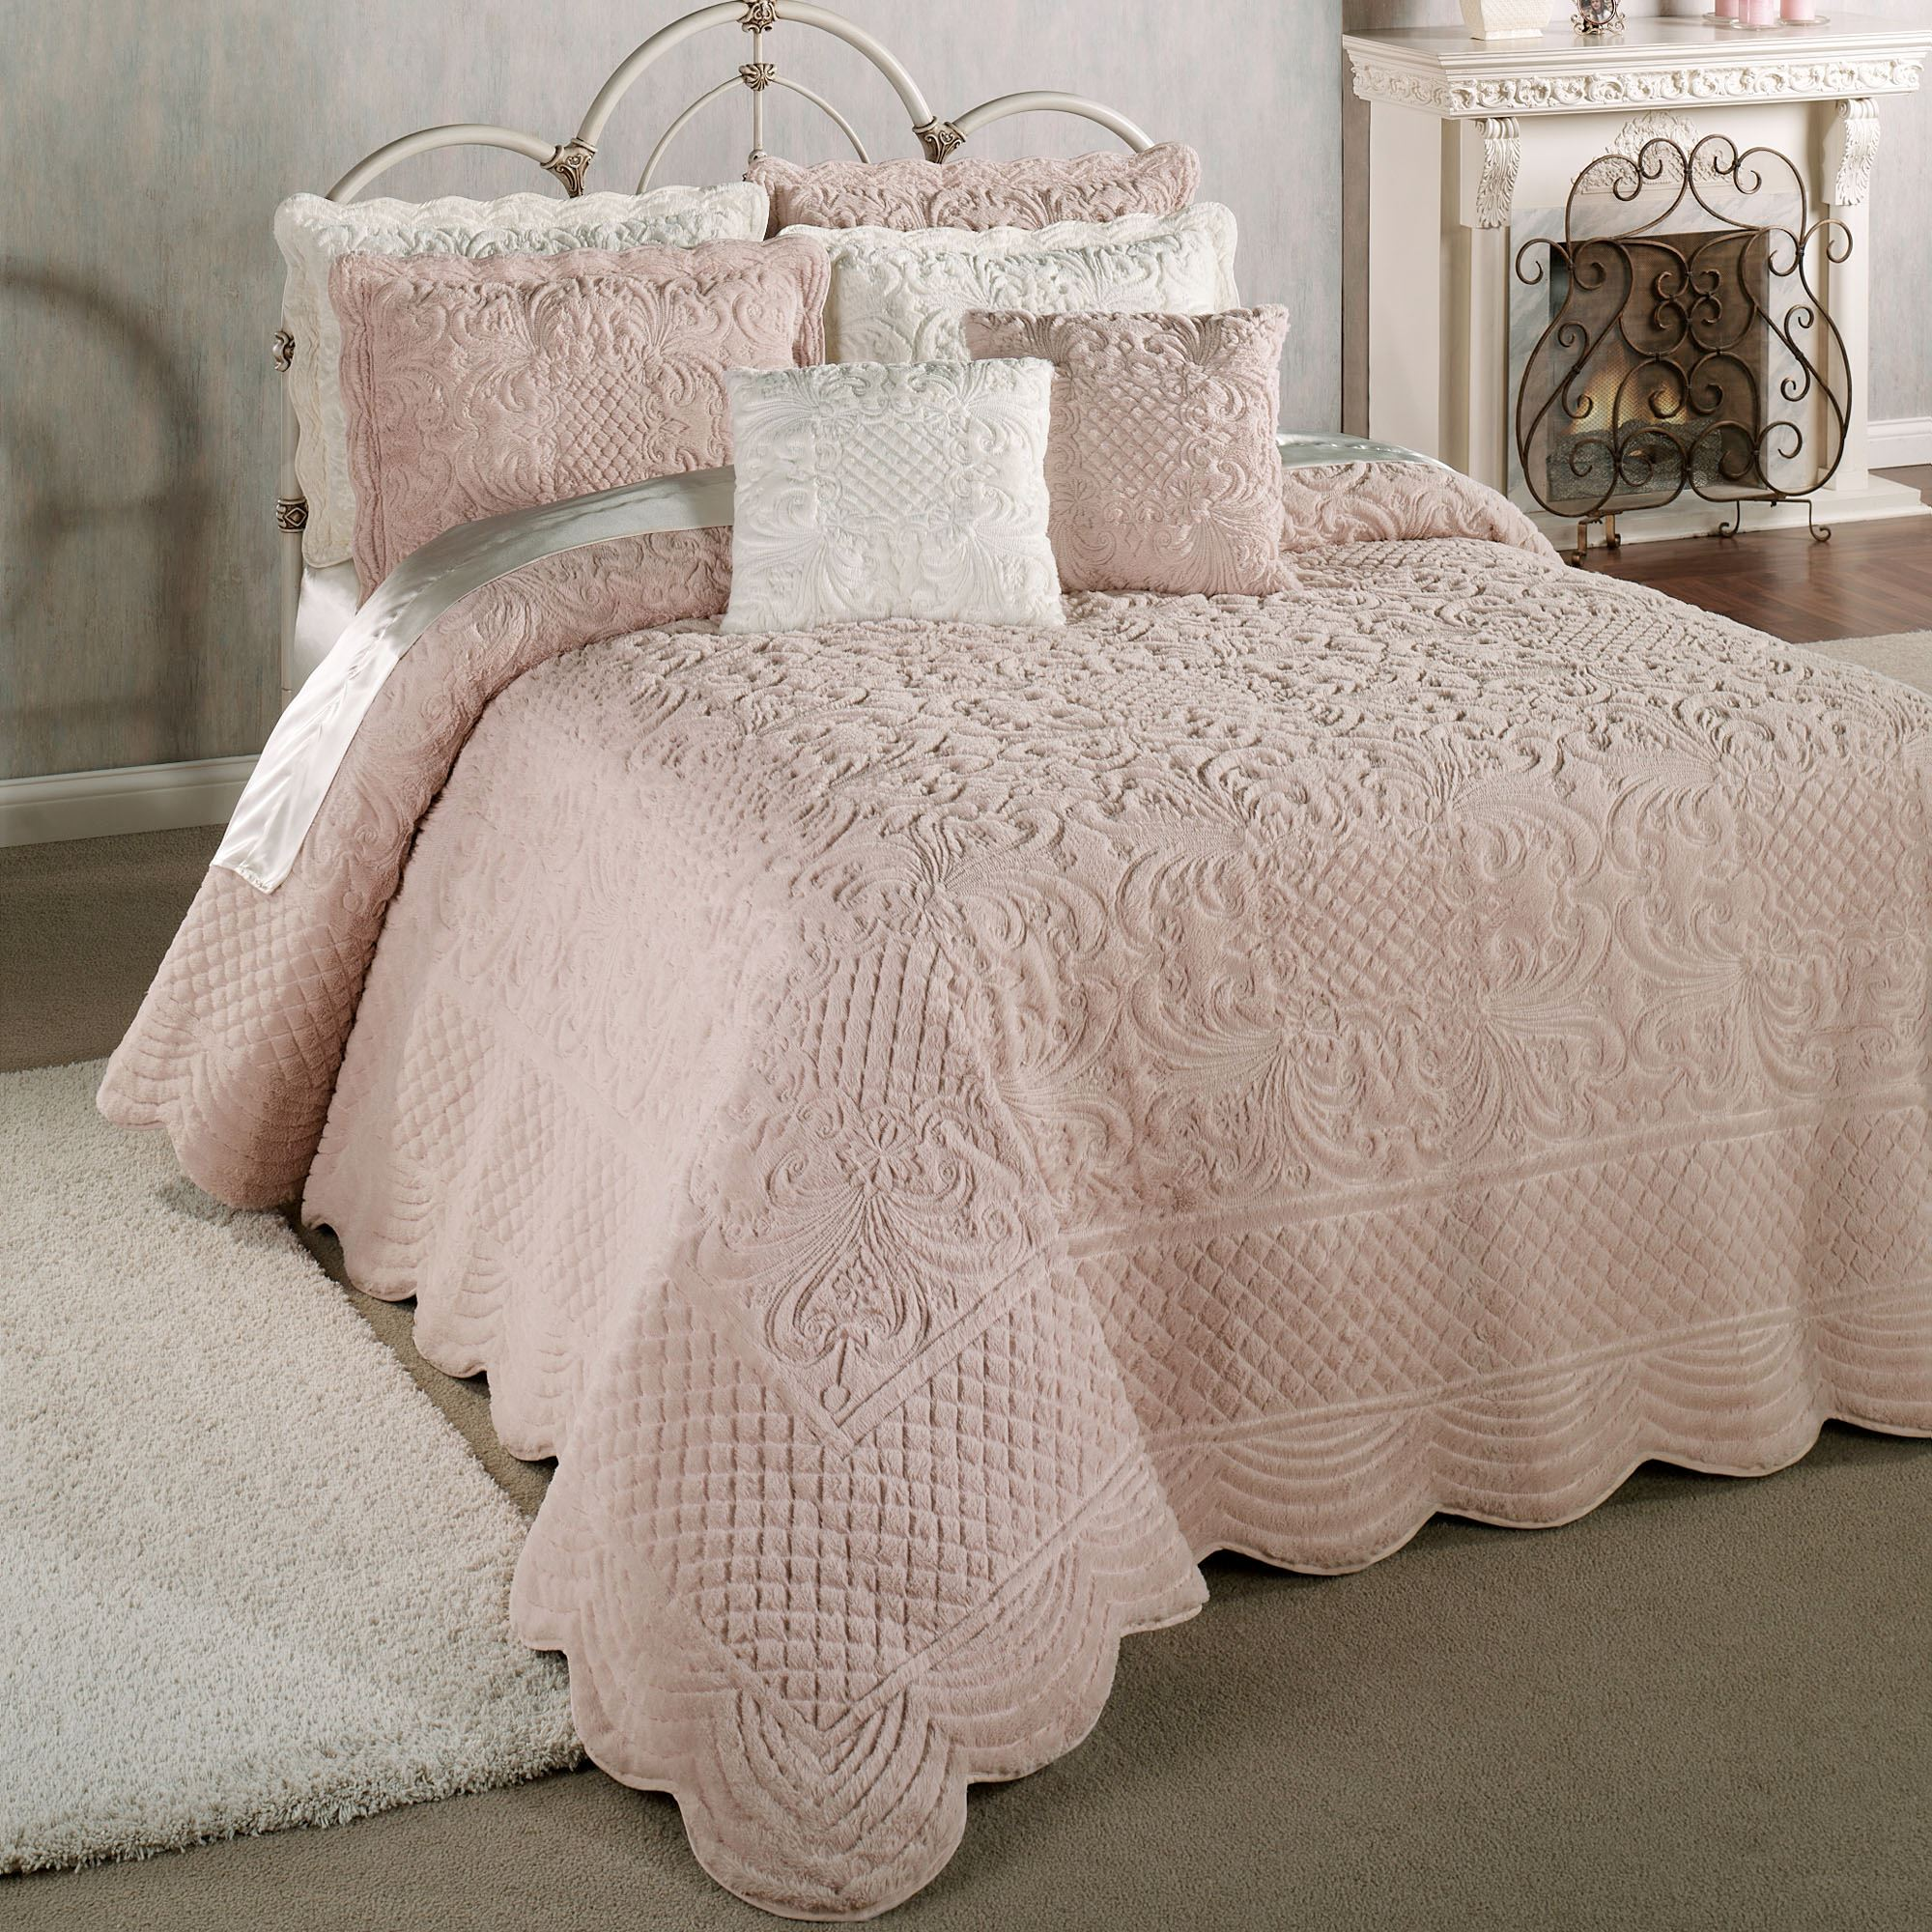 bedspread oversized quilted bedding fawn silk tailored quilt p allure grande